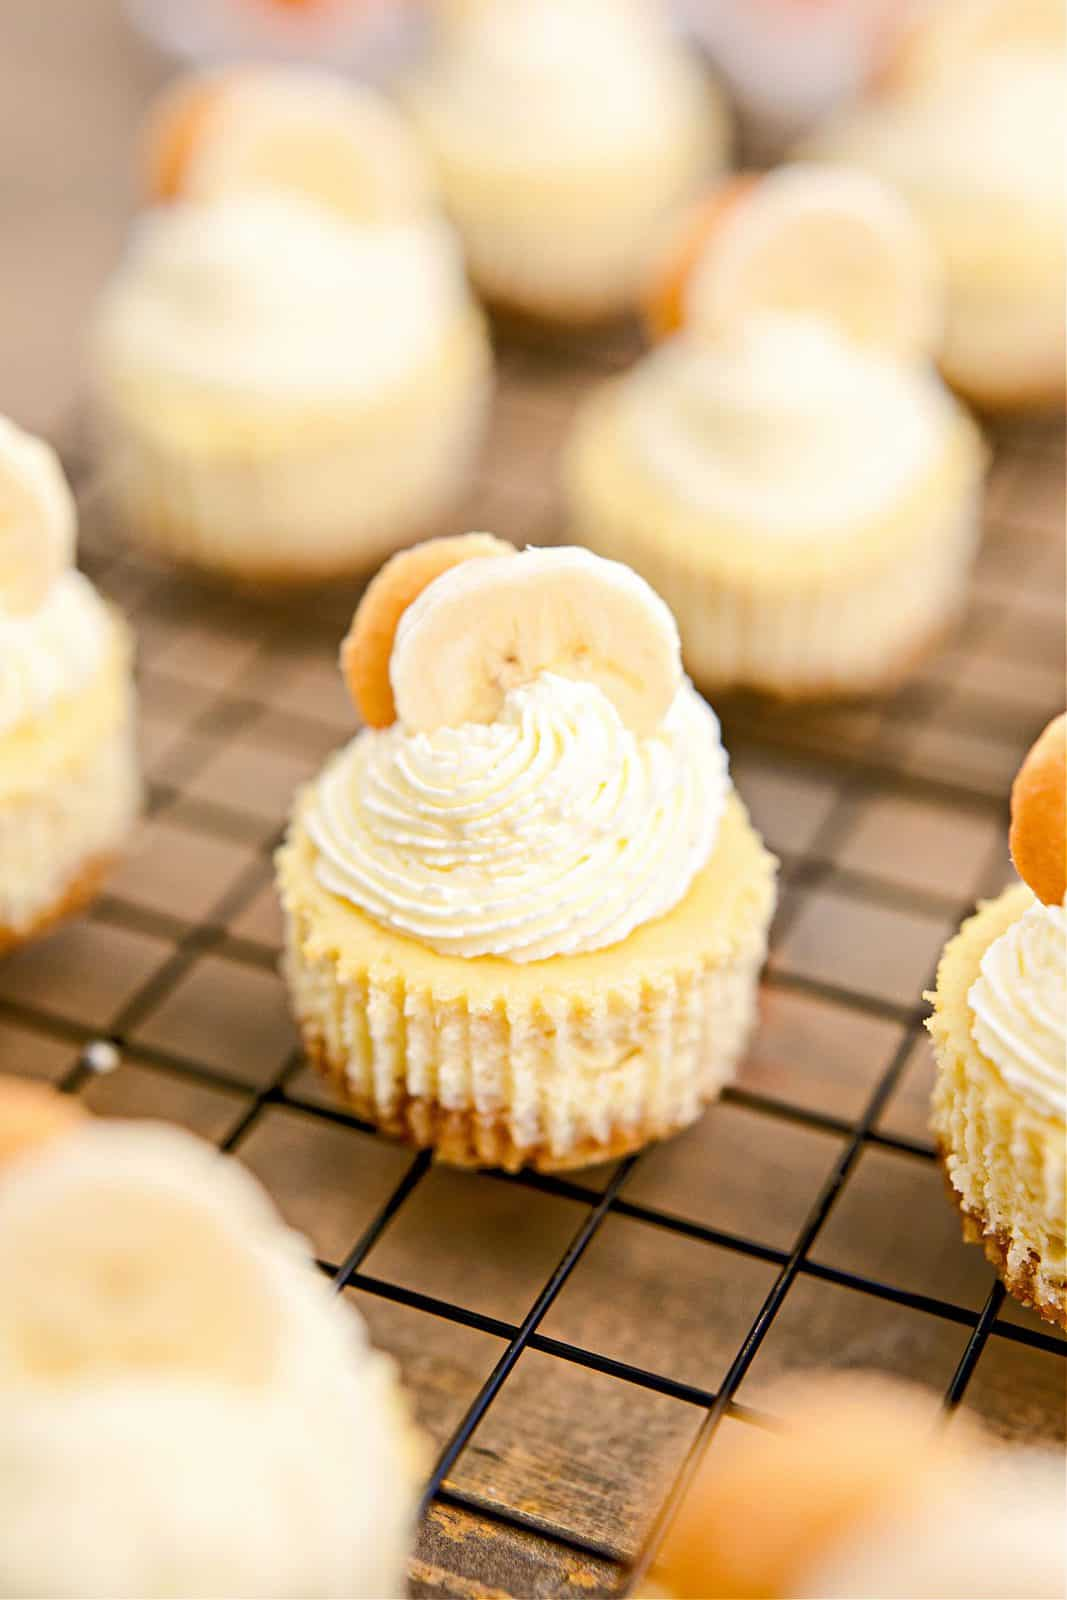 Mini Banana Pudding Cheesecakes on wire rack decorated with swirled whipped cream and slices of banana and a Nilla wafer.